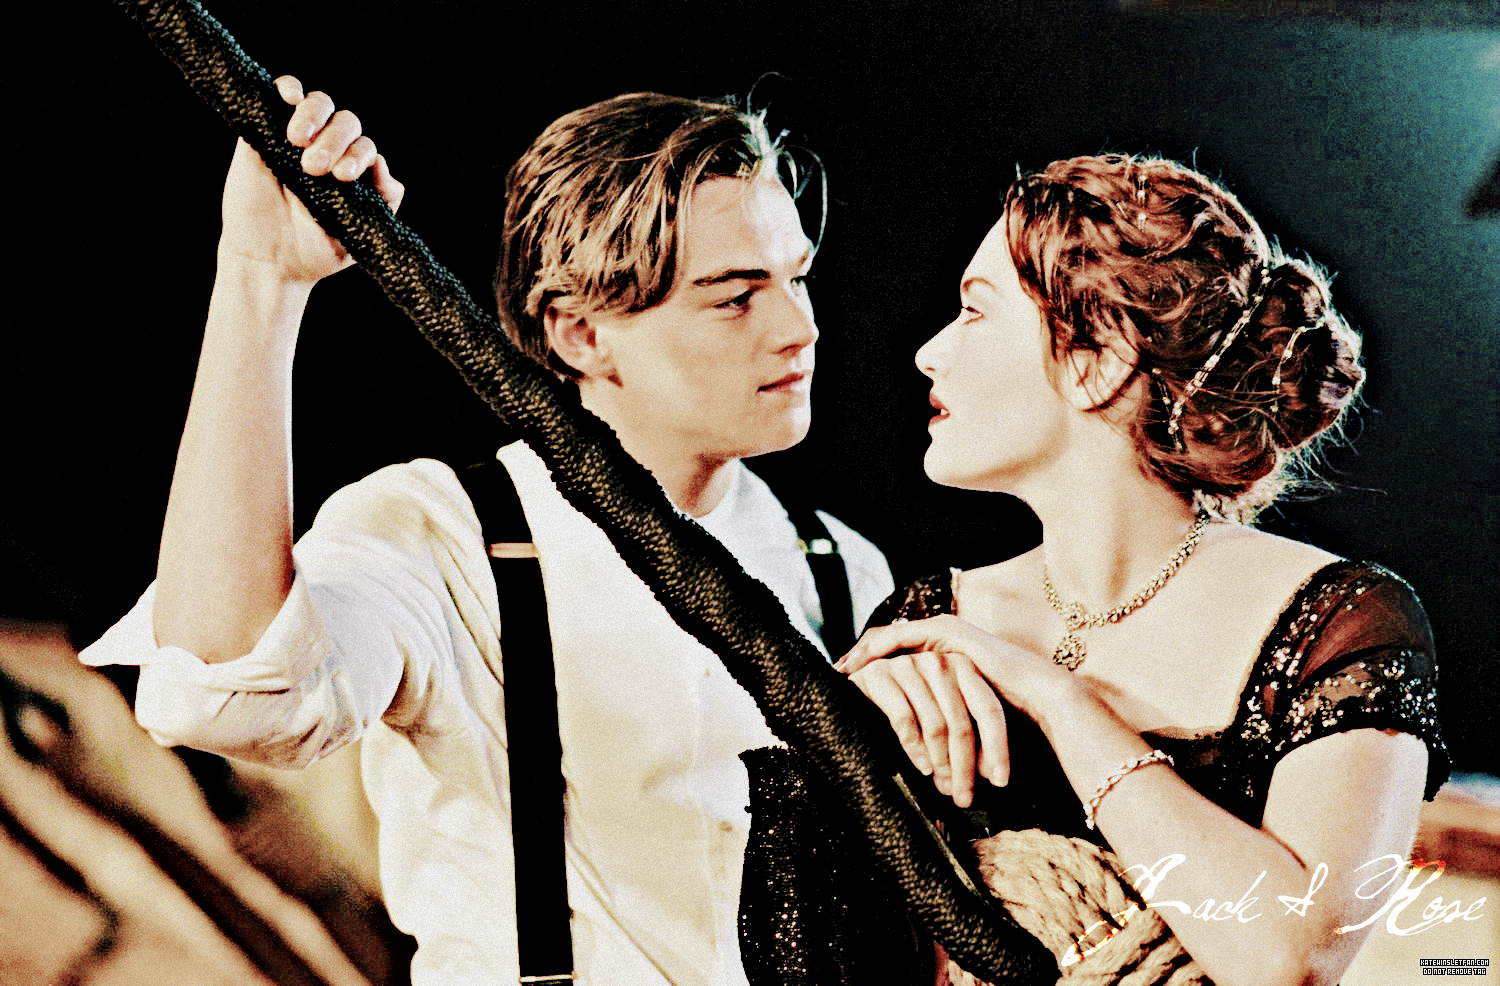 1000 images about titanic on pinterest kate winslet - Jack and rose pics ...